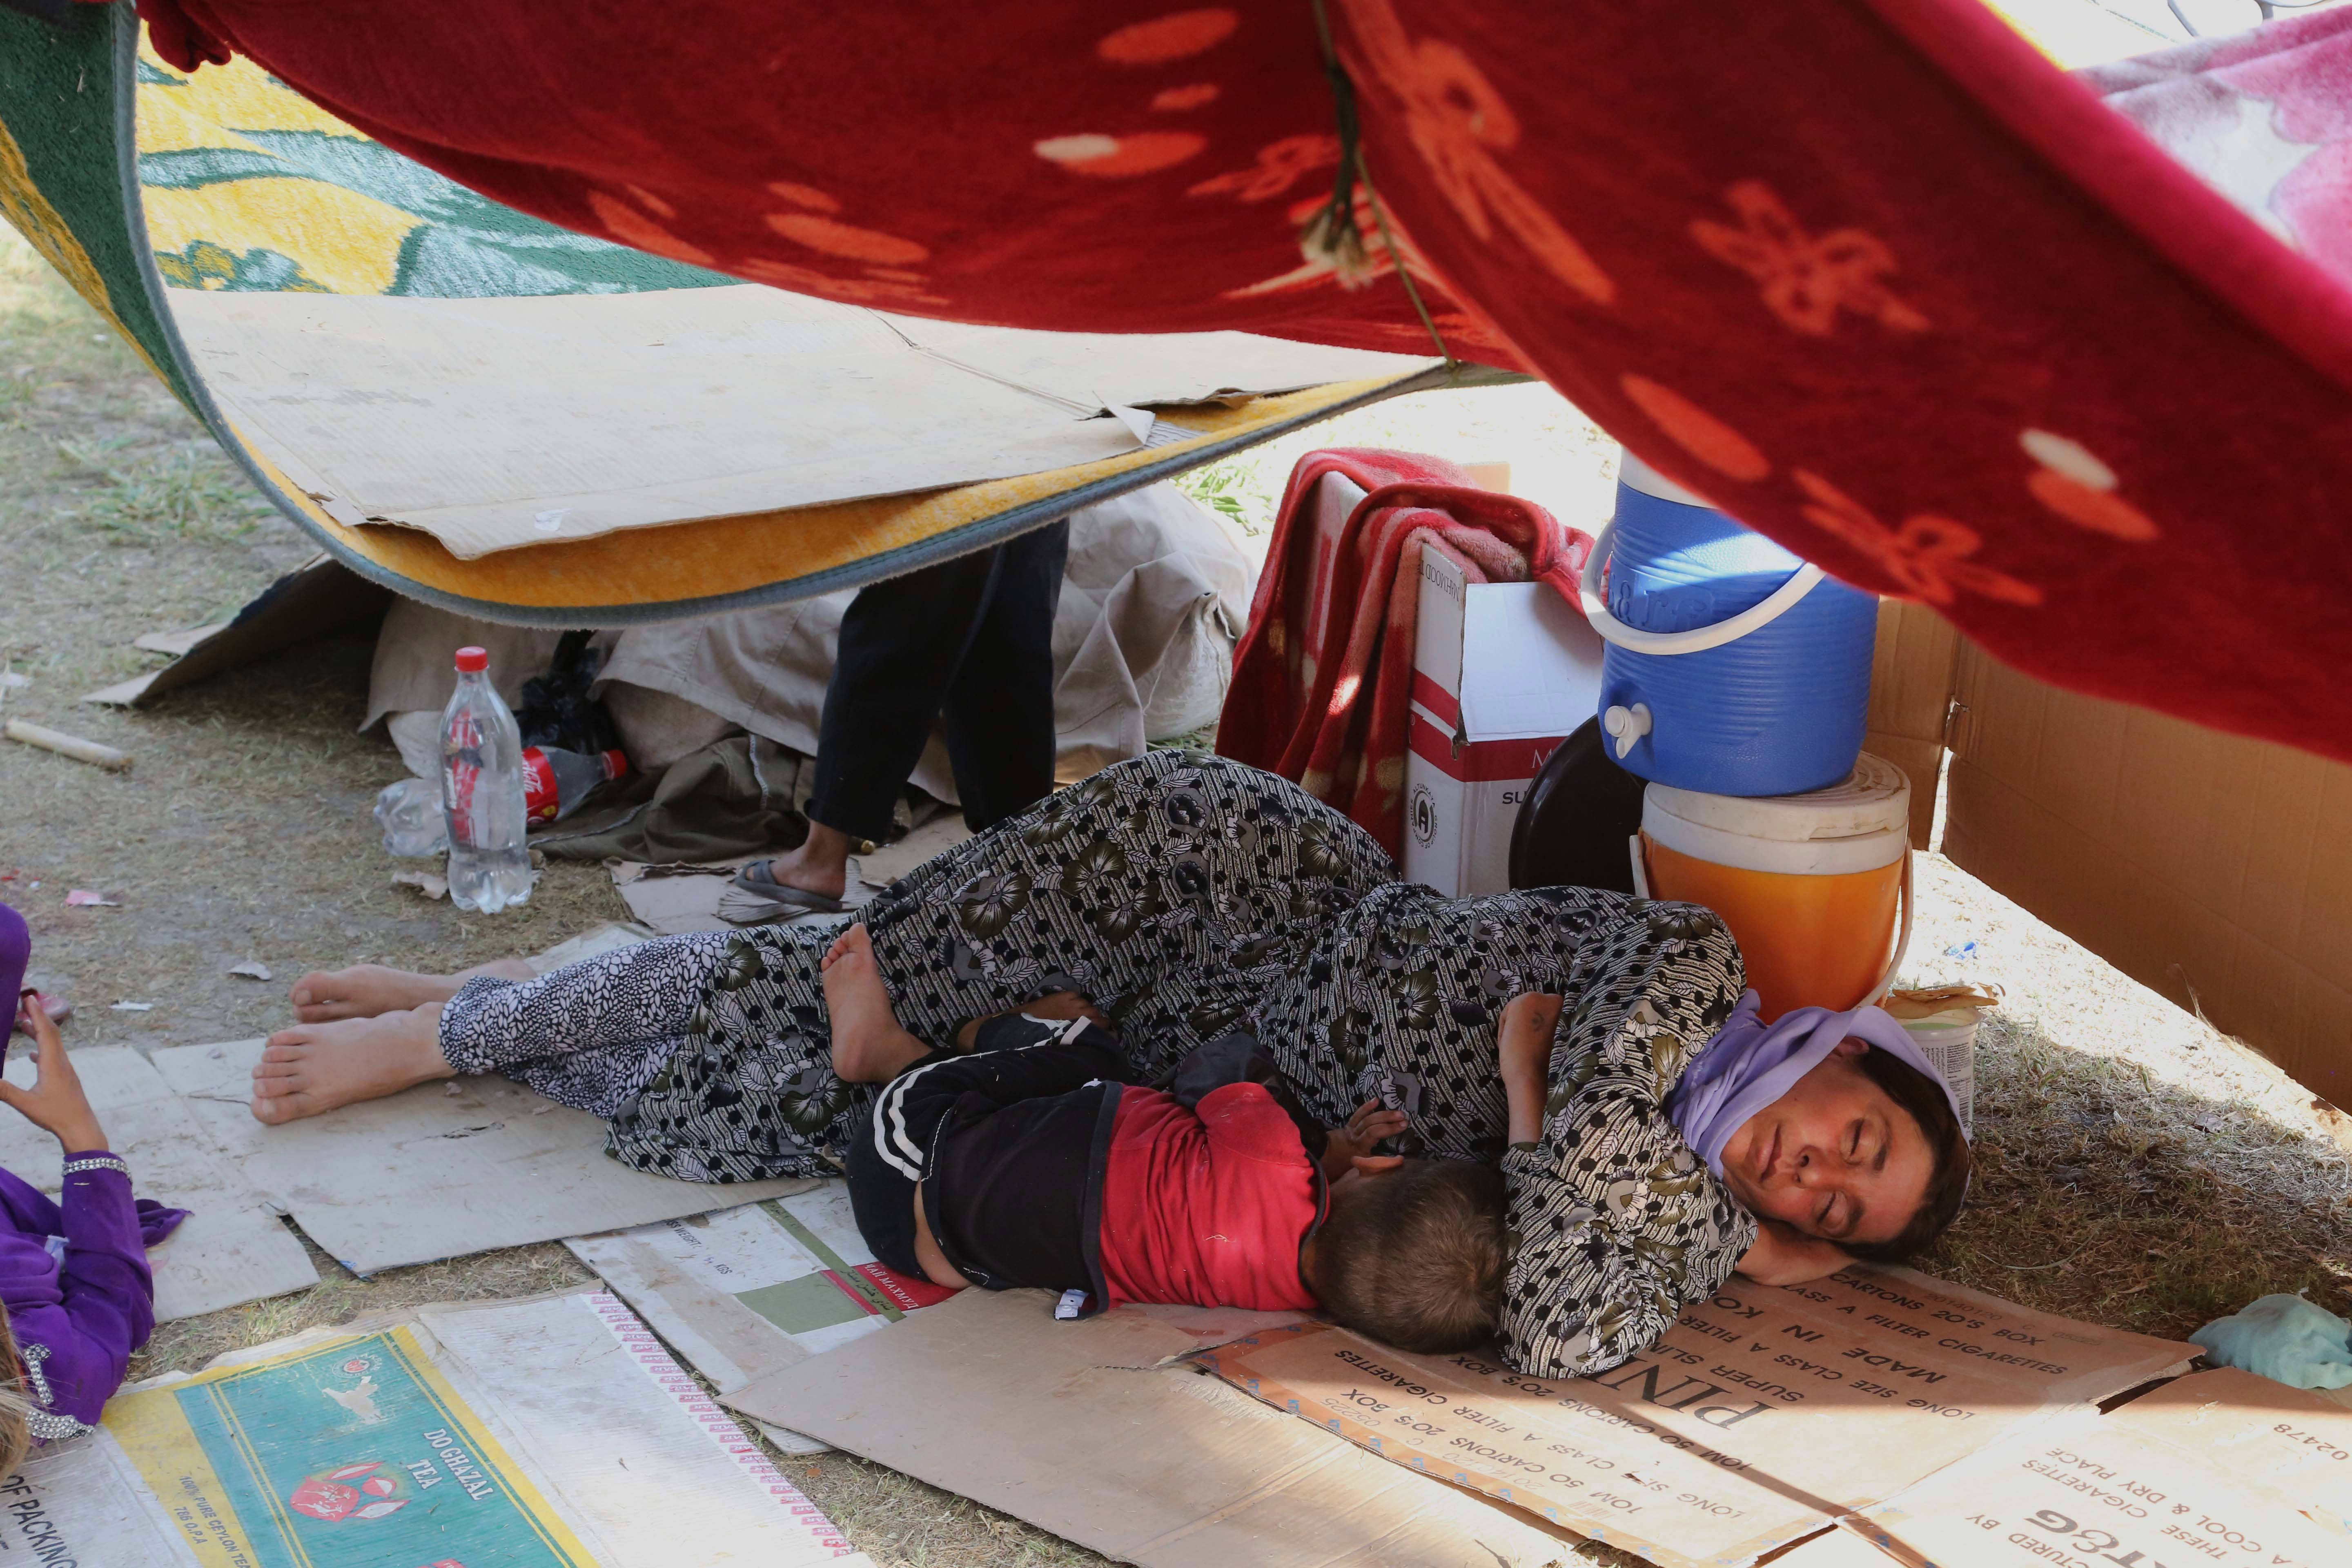 An Iraqi woman and her son from the Yazidi community sleep at a park near the Turkey-Iraq border at the Ibrahim al-Khalil crossing, as they try to cross to Turkey.